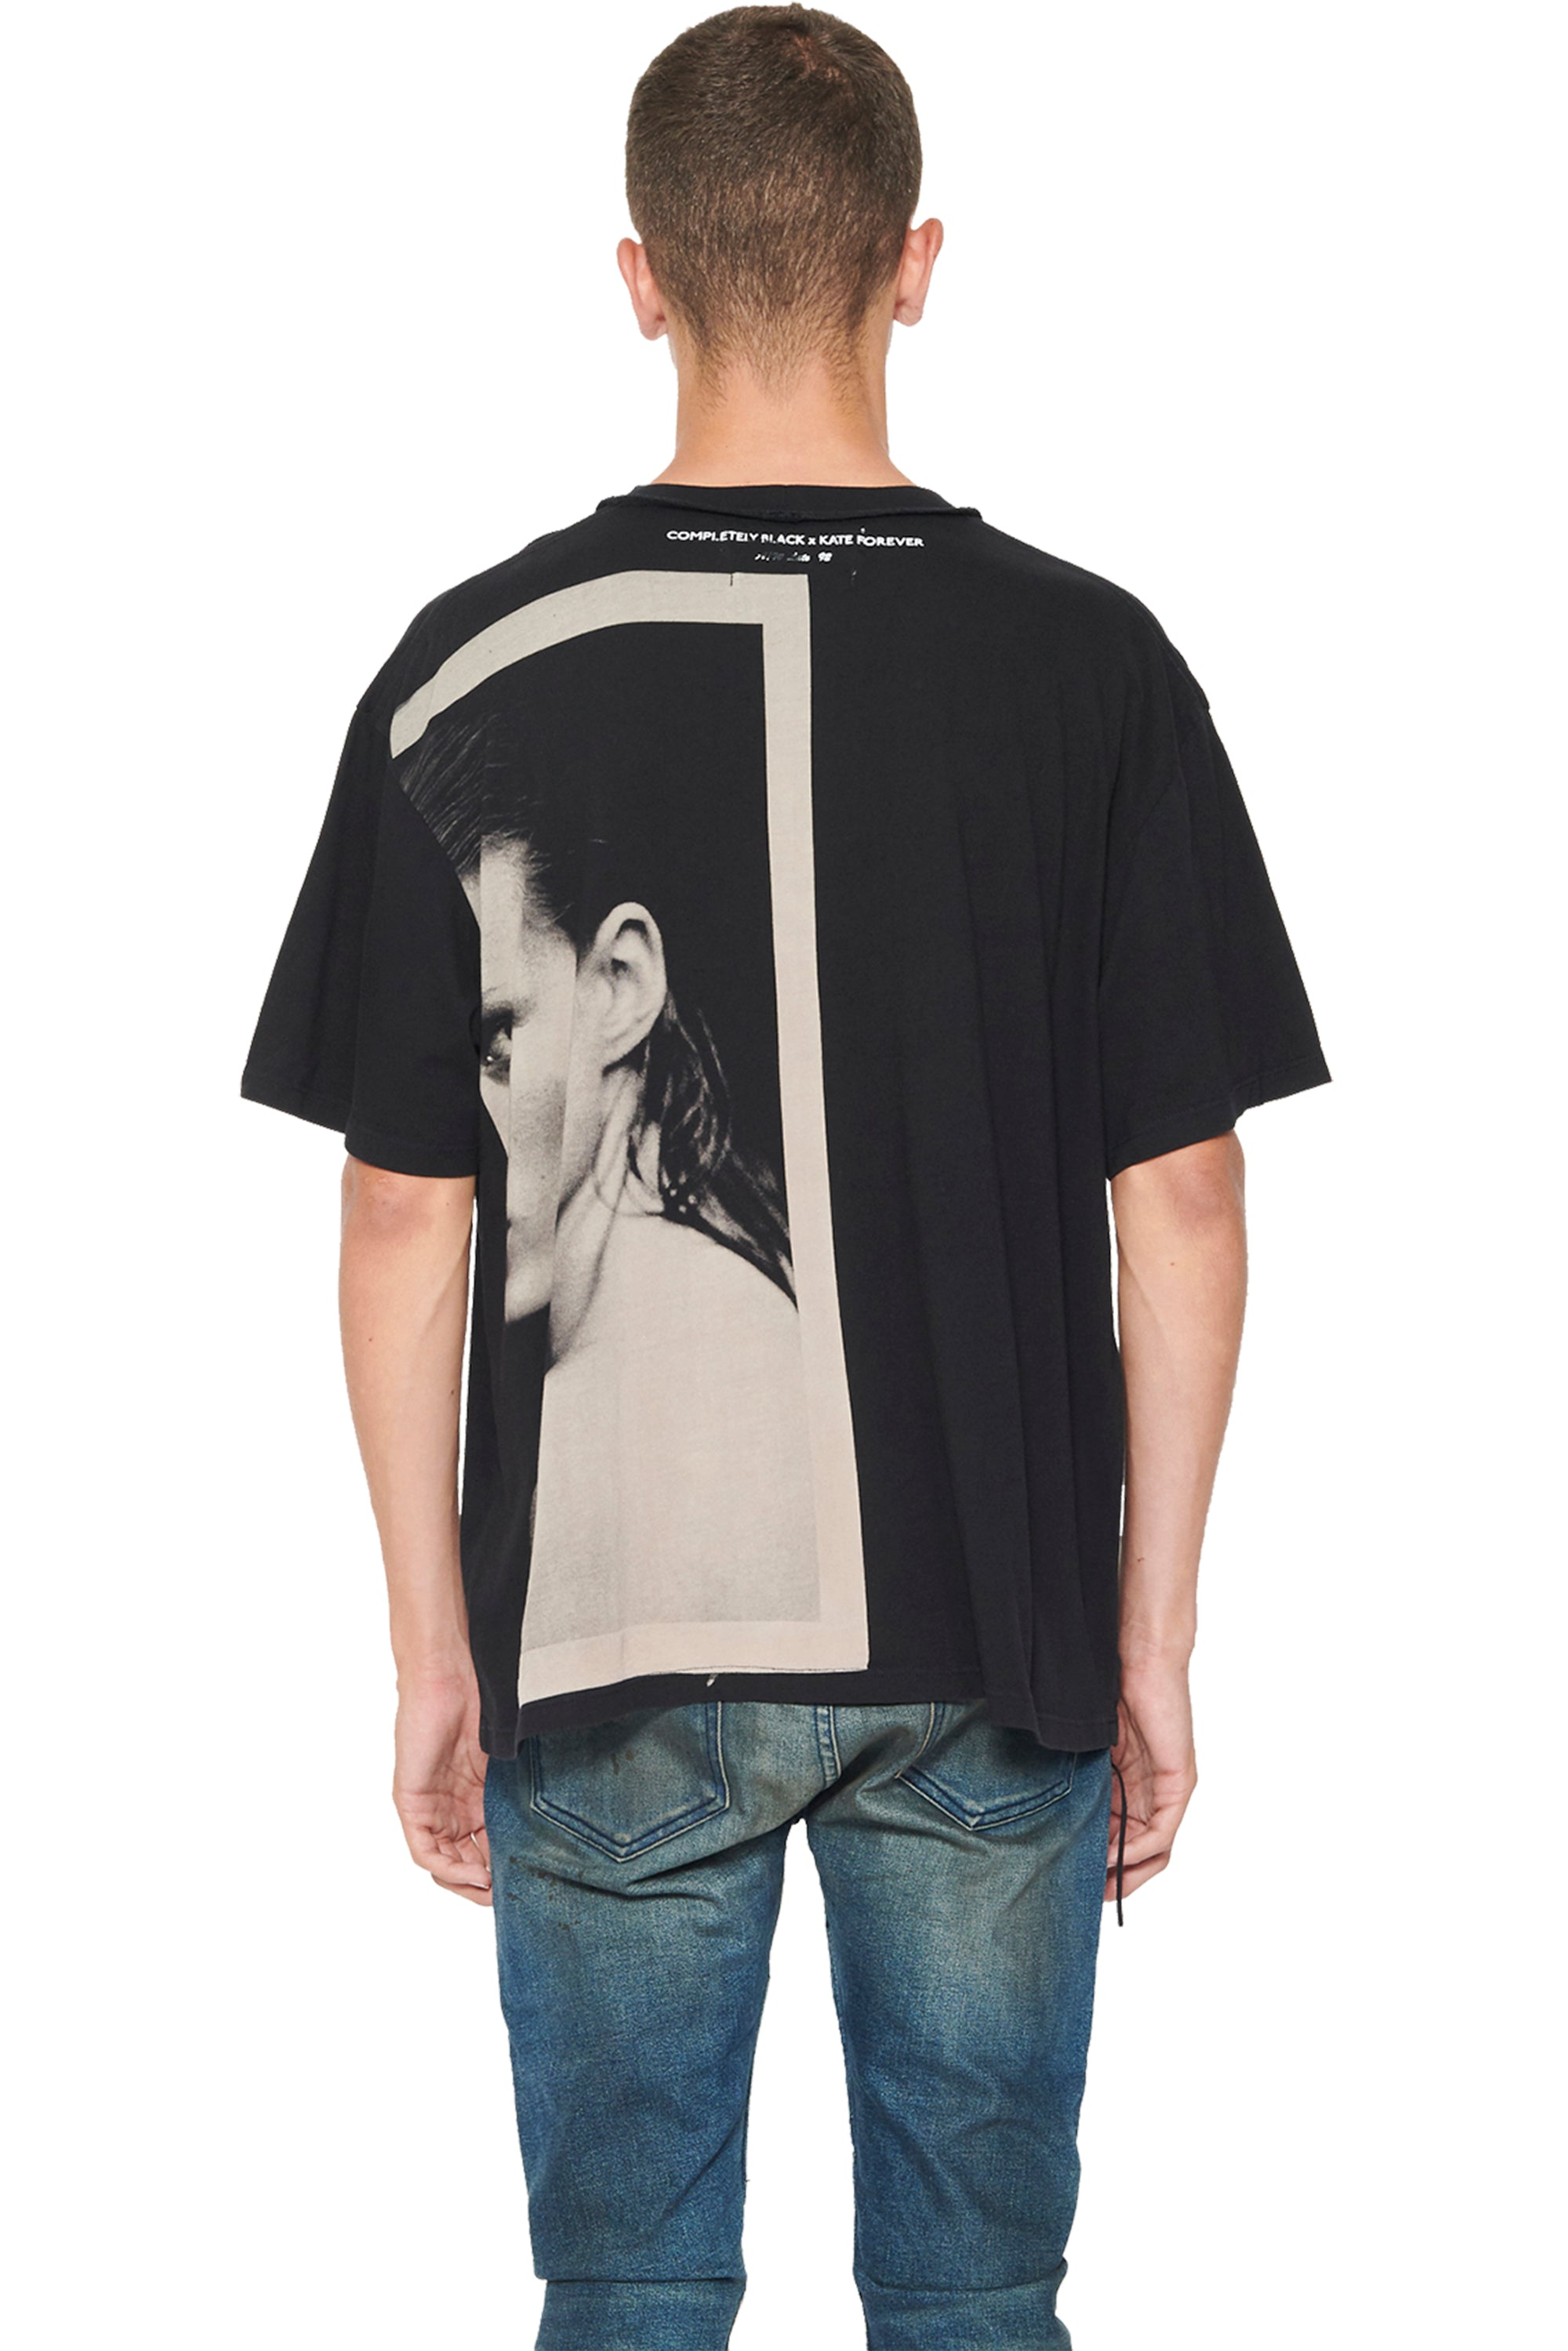 KATE FOREVER T SHIRT- LEFT FACE